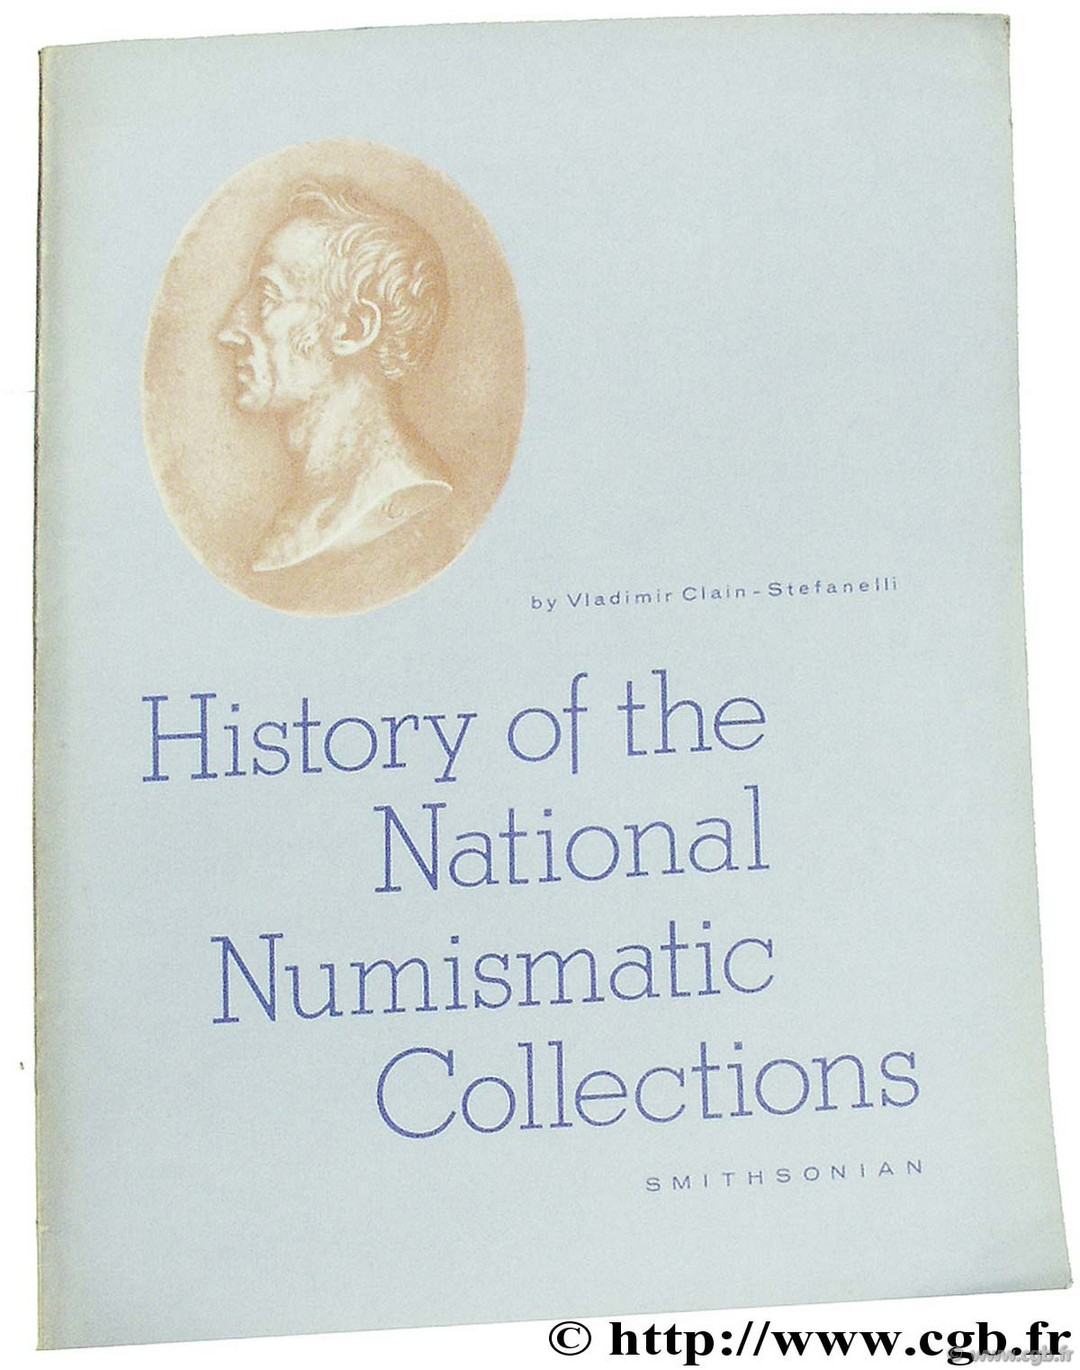 Contribution from The Museum of History and Technology. History of the National Numismatic Collections Smithsonian Museum CLAIN-STEFANELLI V.